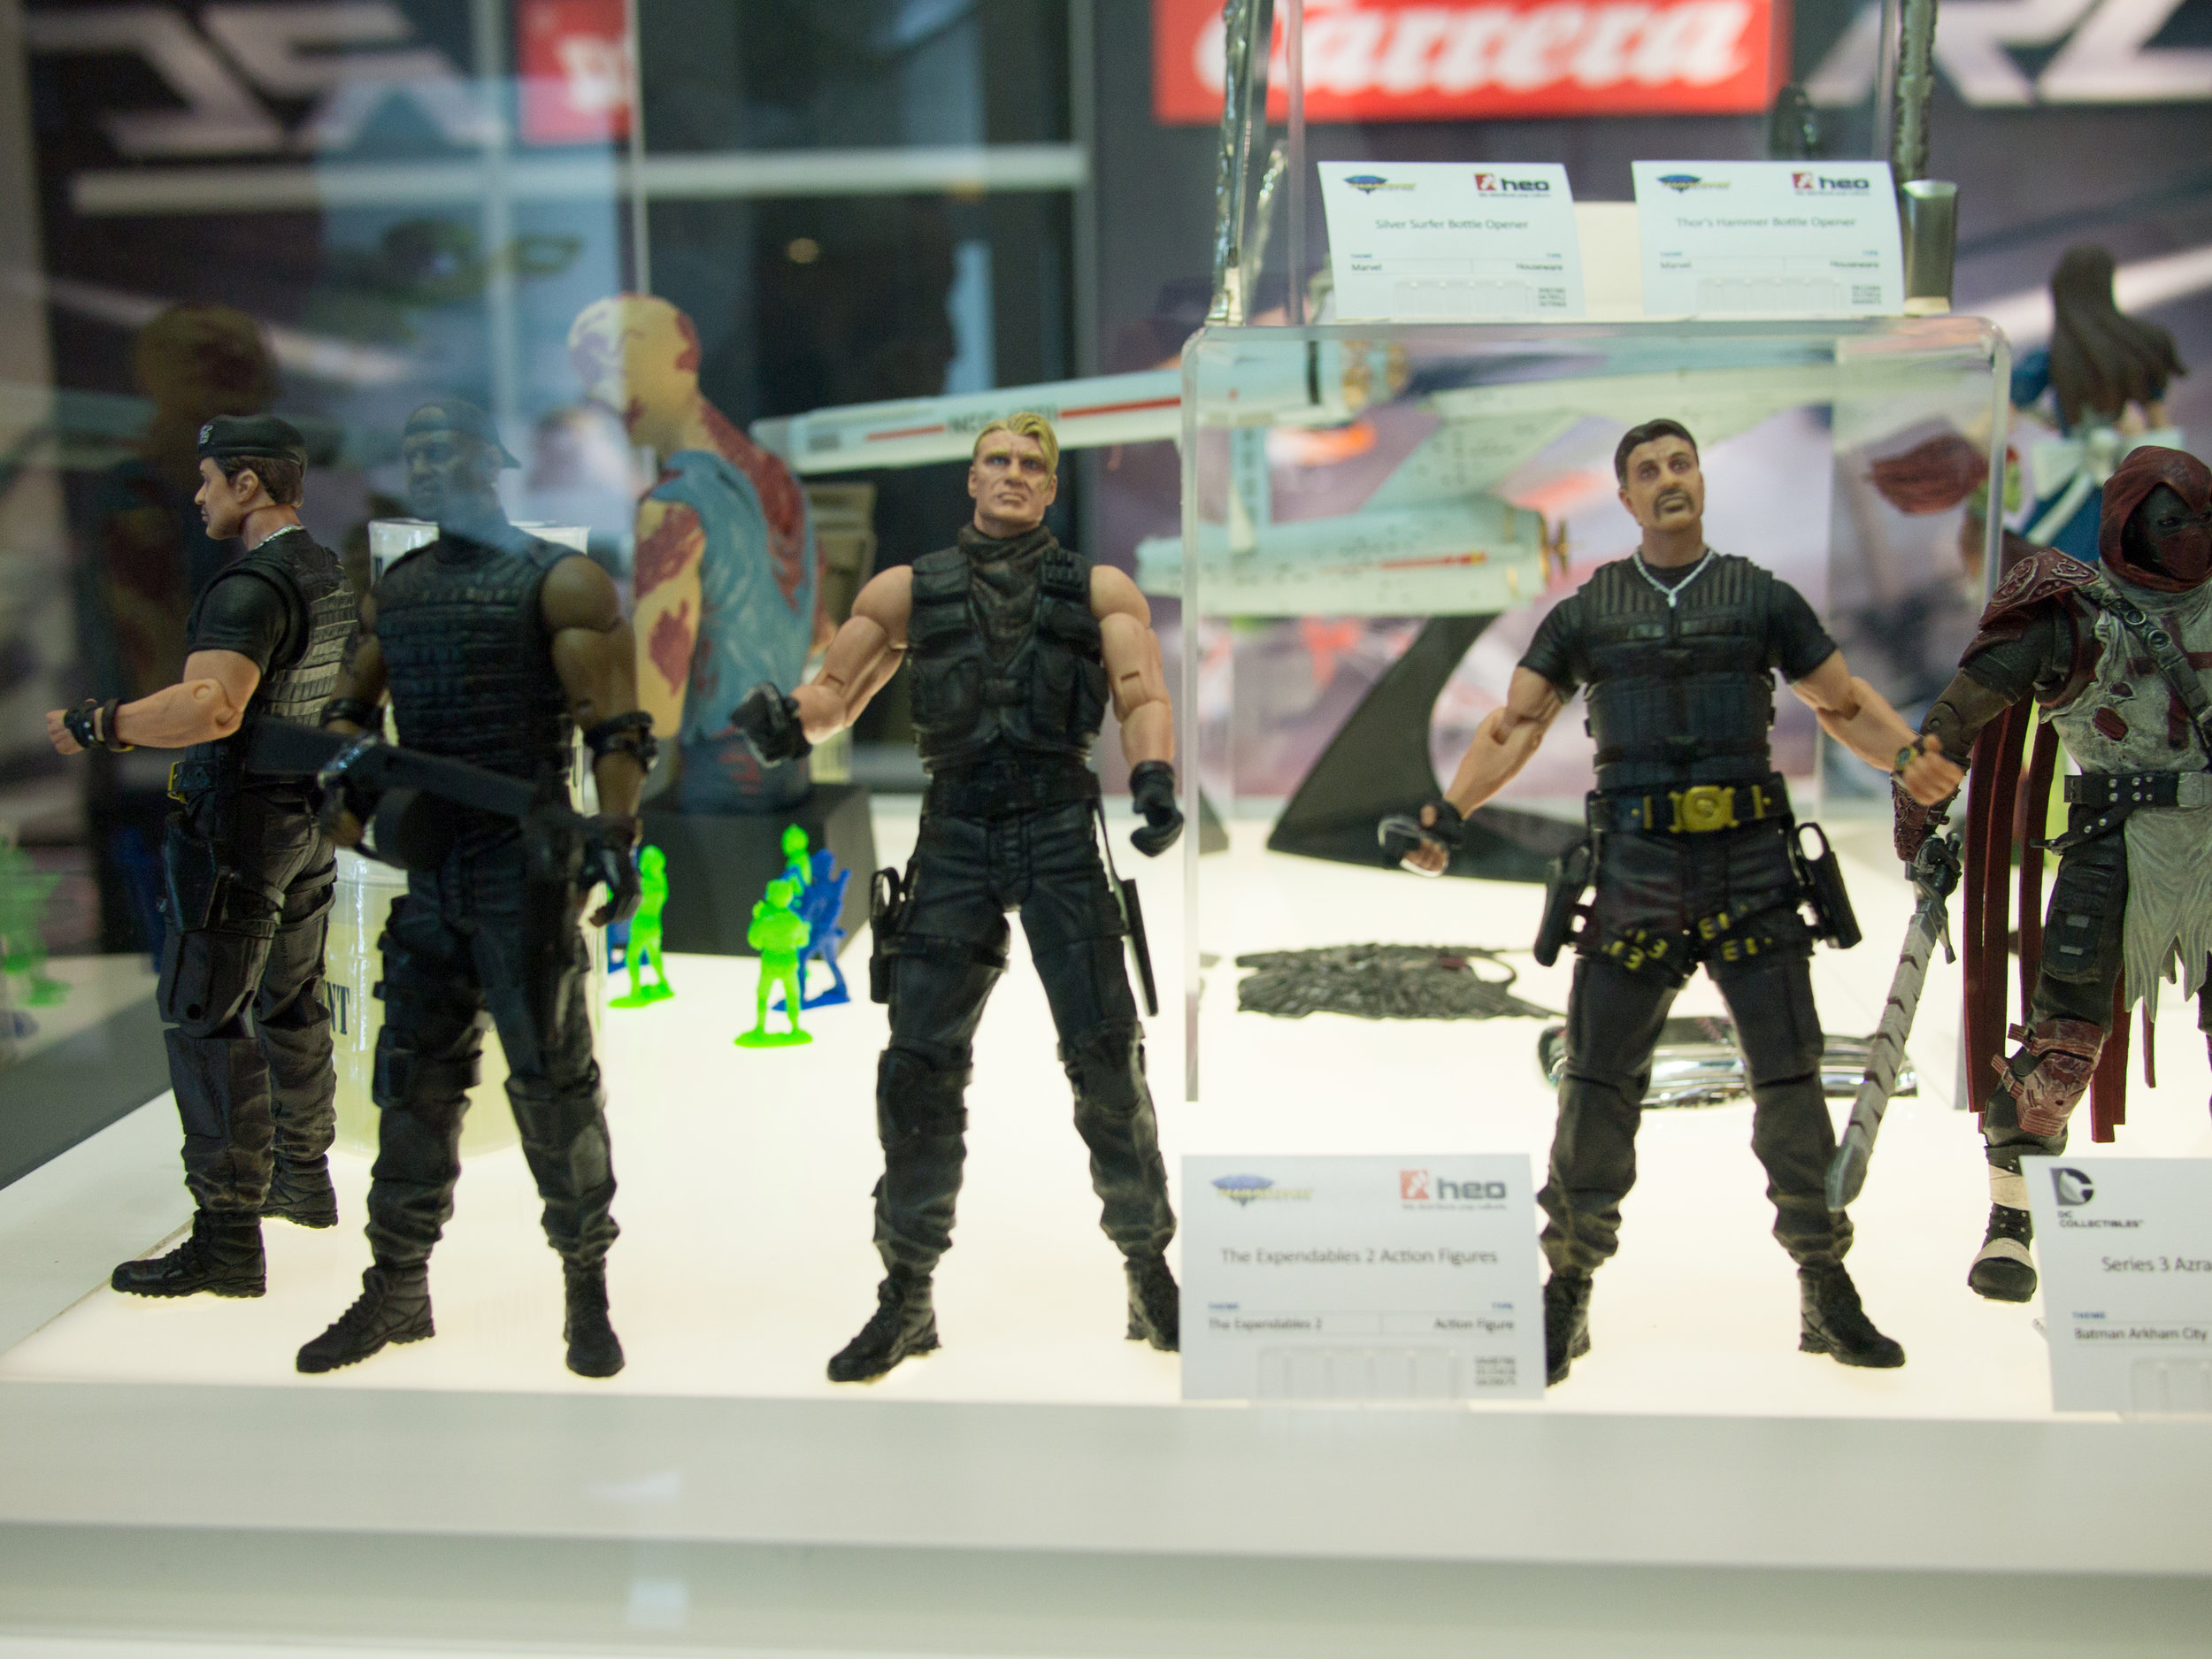 Action figures at Spielwarenmesse 2013. Image credit:    Crosa   /   Flickr